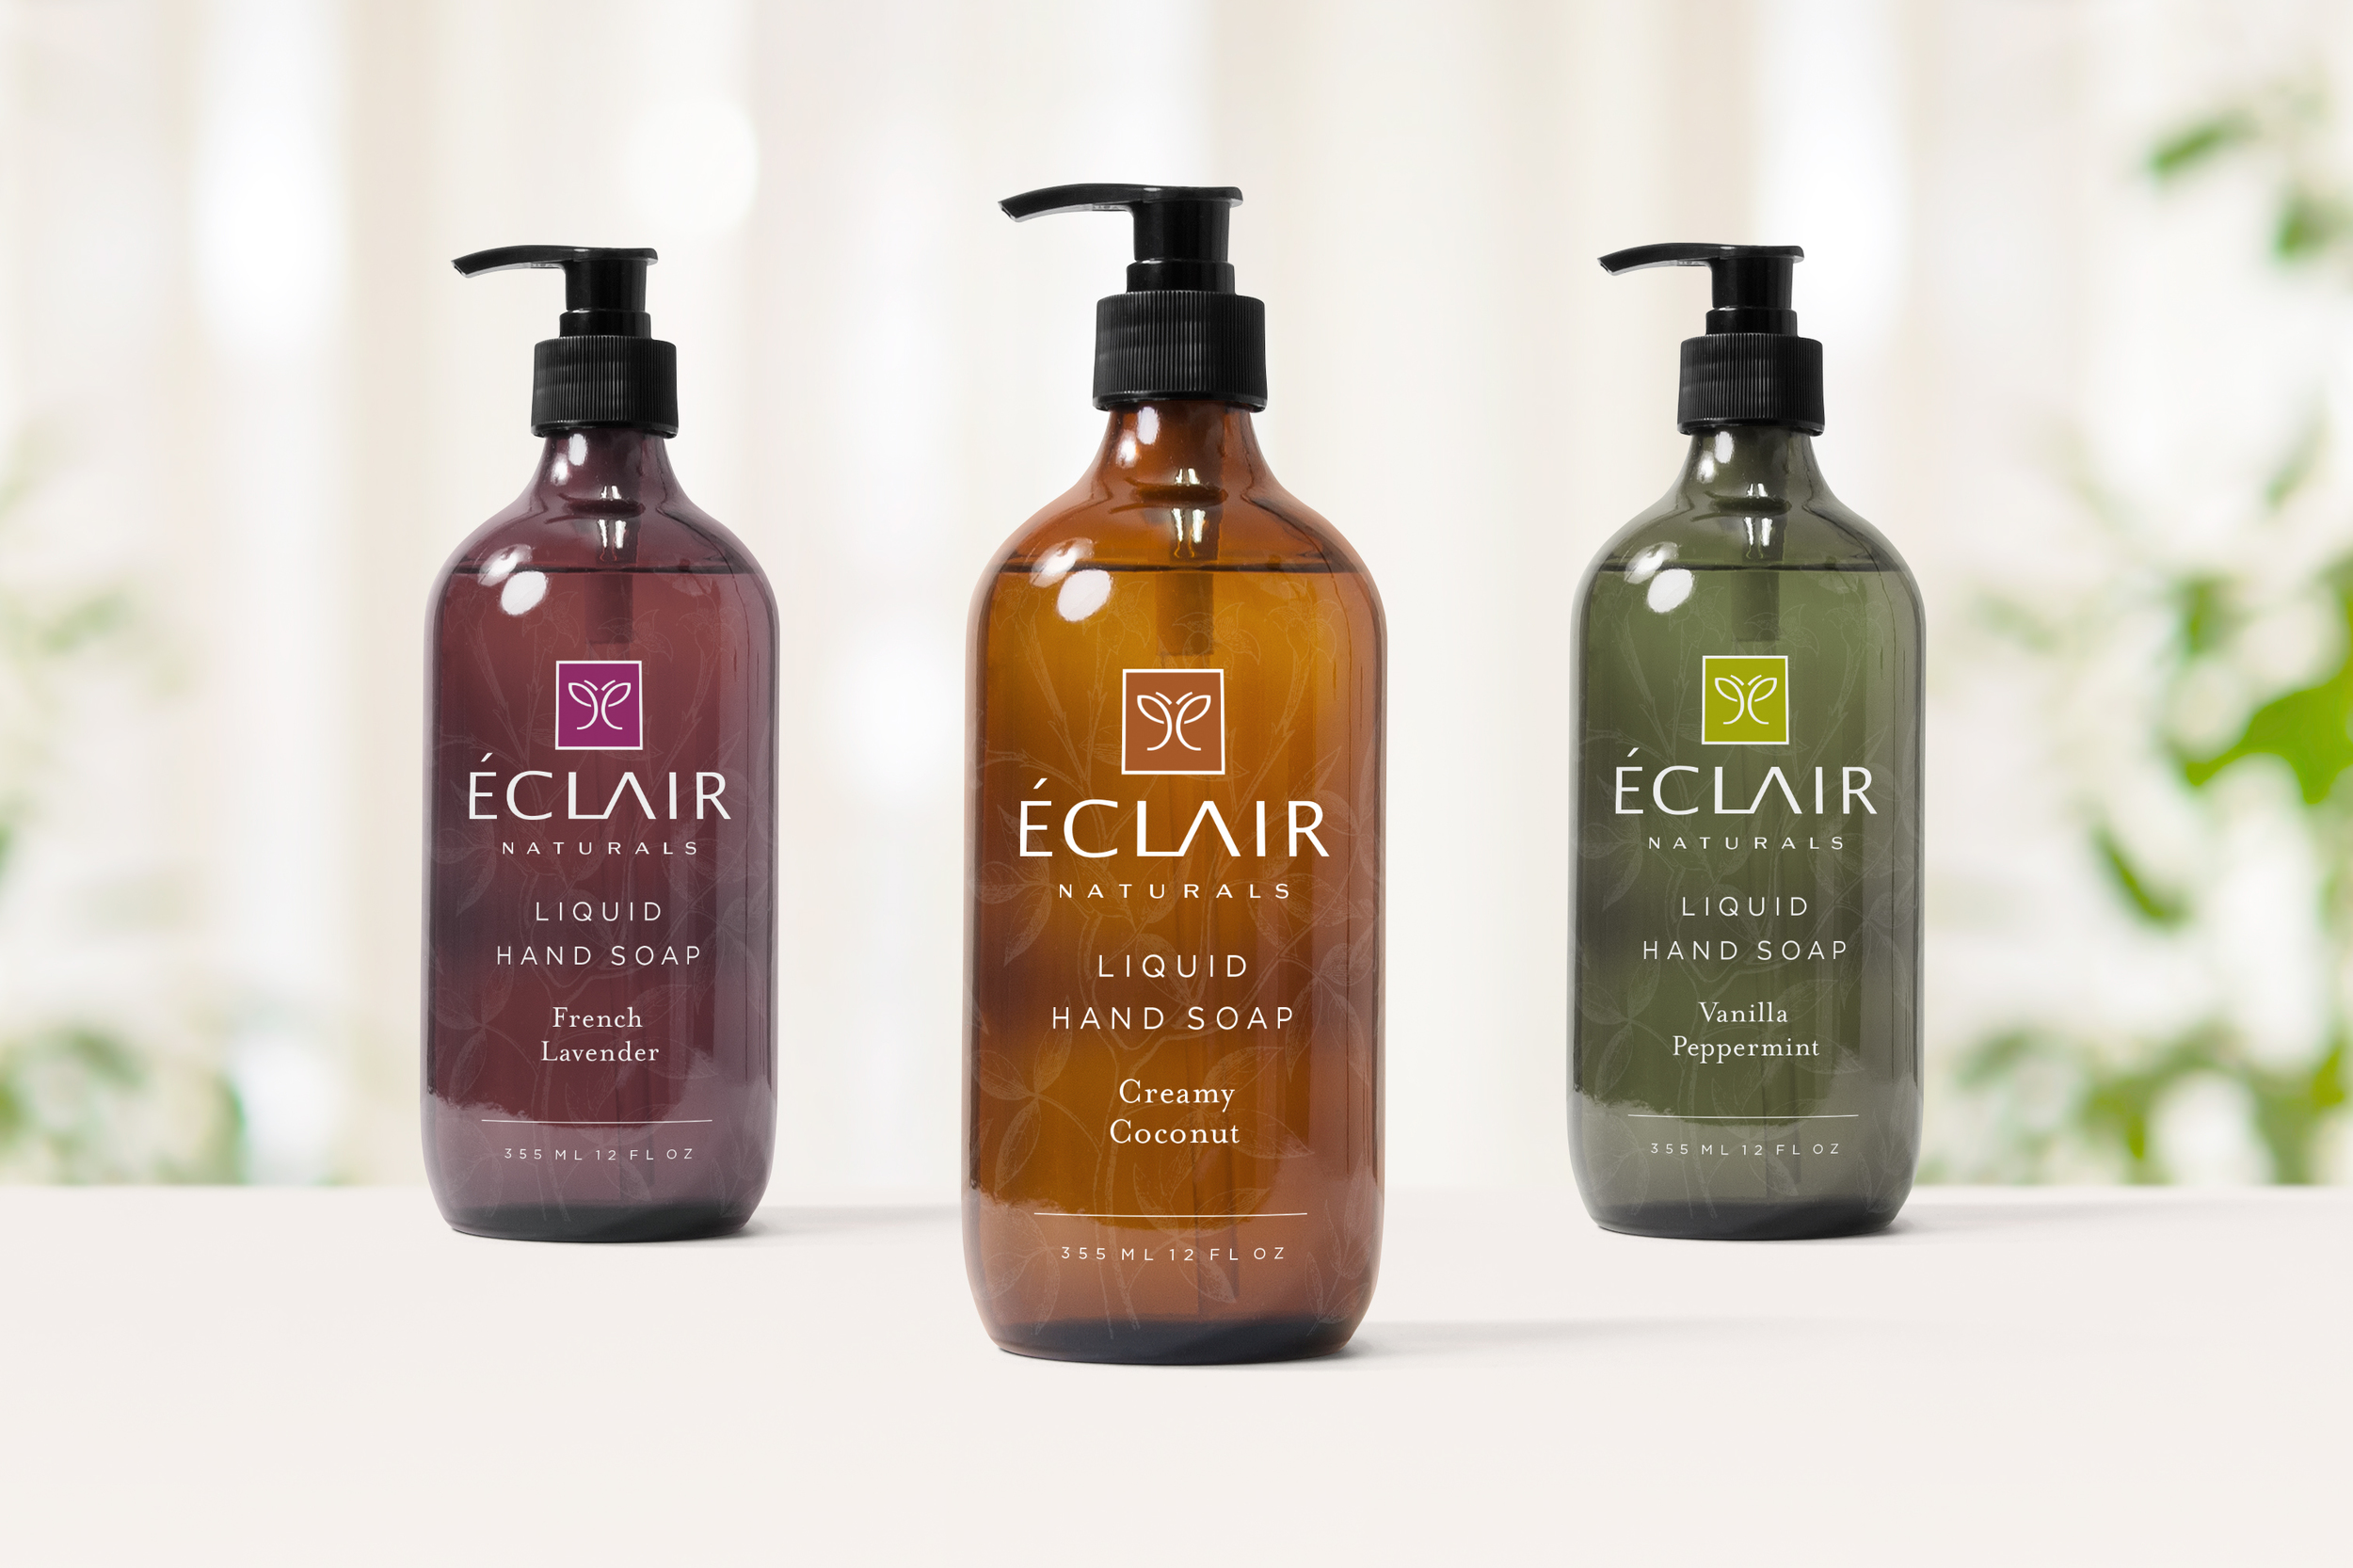 Eclair_02 Dispenser Bottle PSD Mockup.jpg